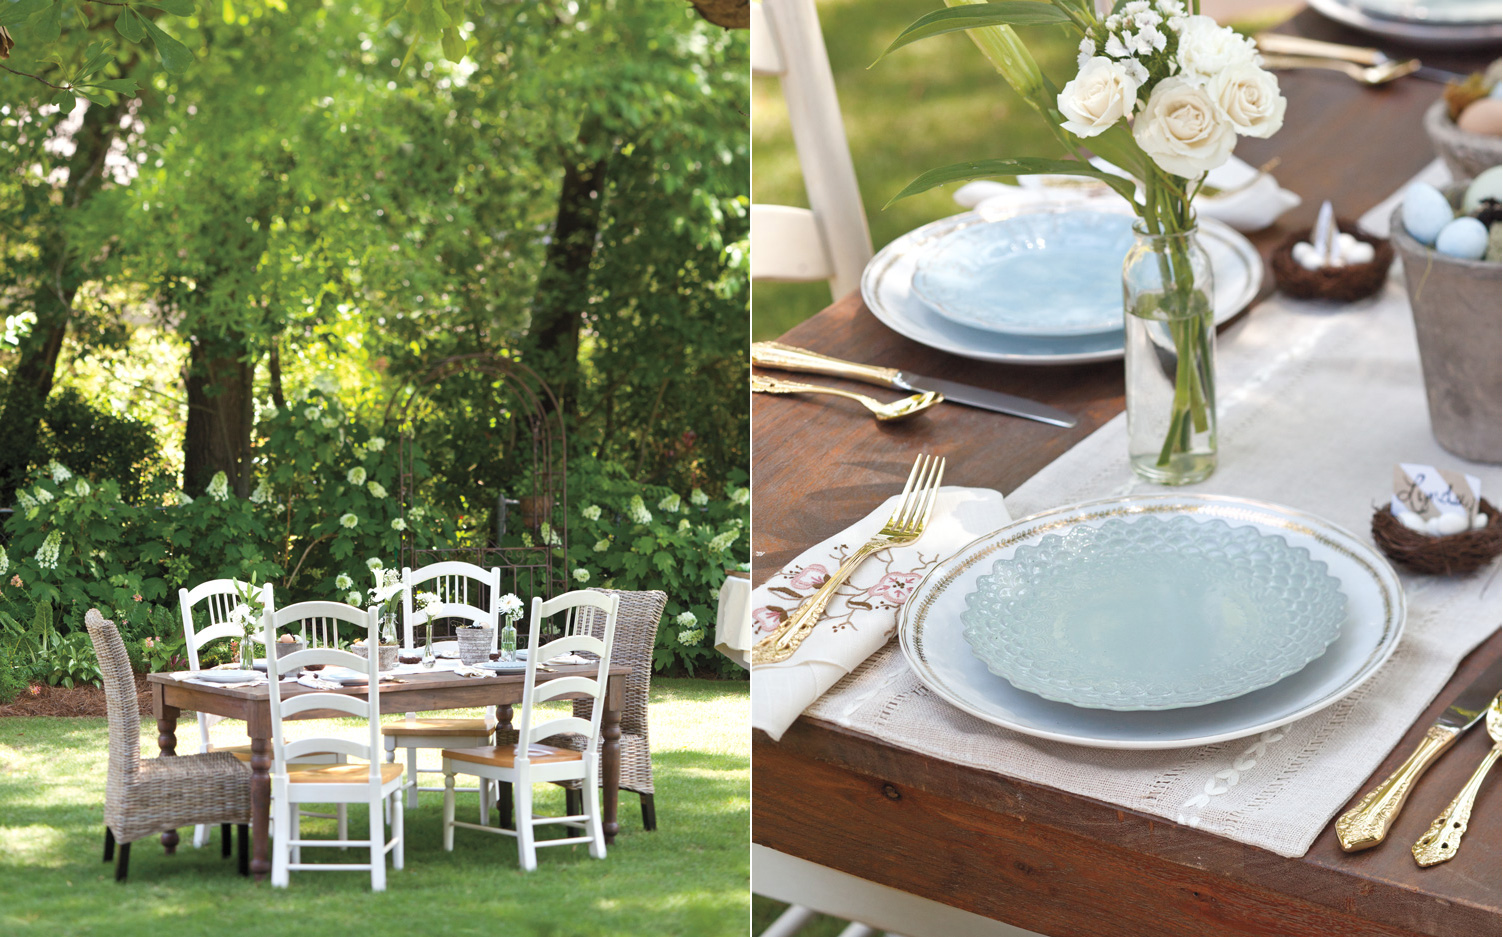 A picture of an alfresco Easter luncheon spread